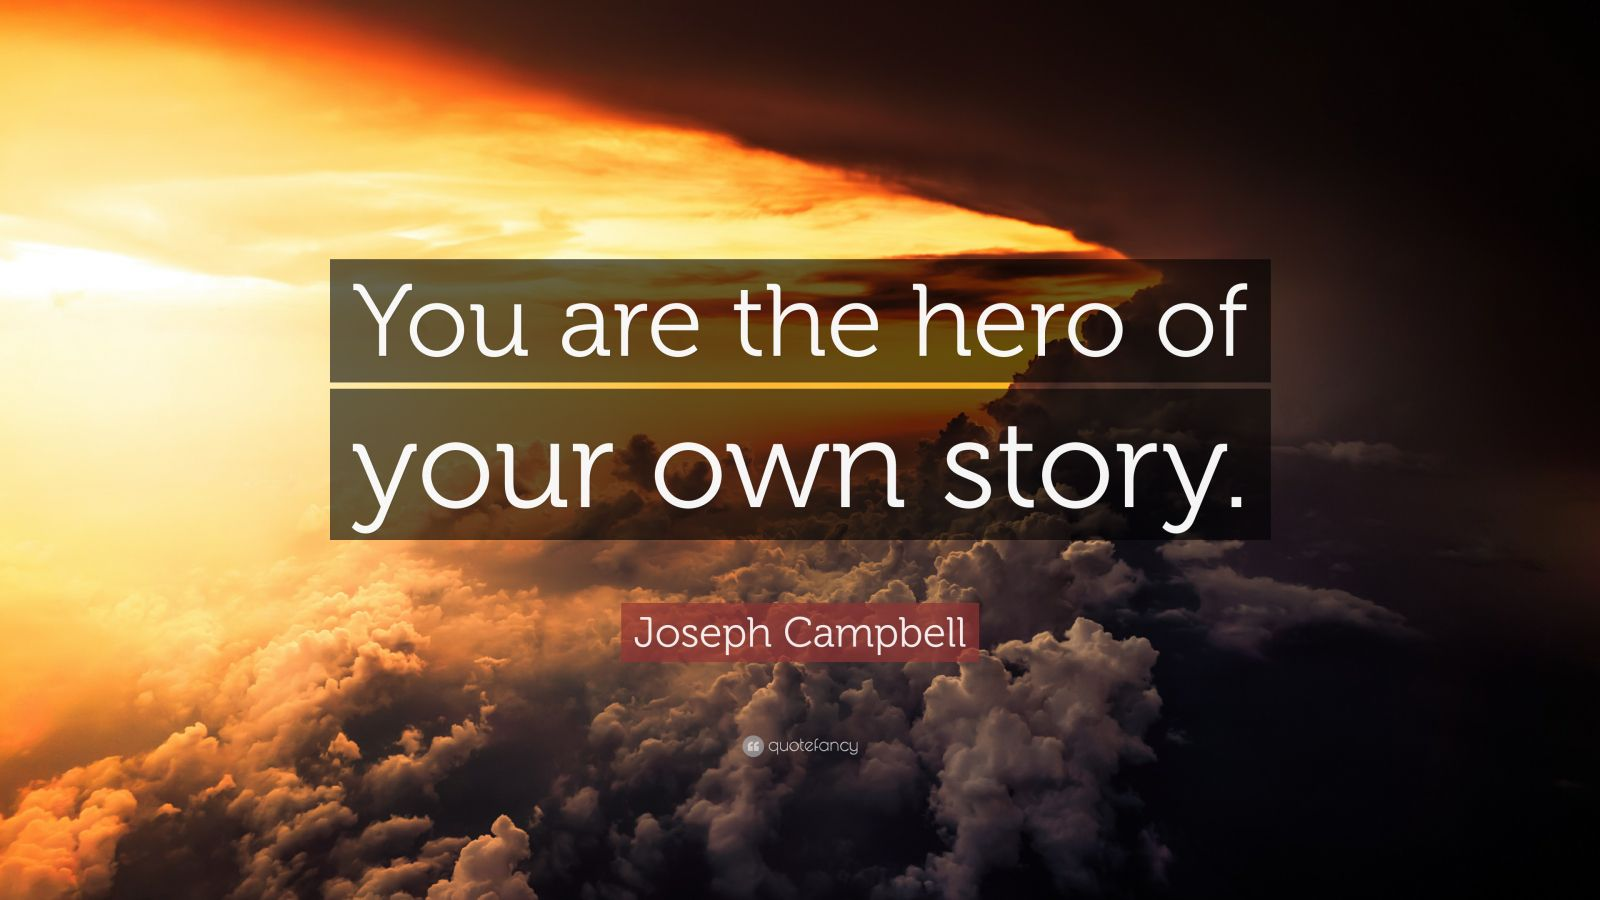 Socrates Wallpaper Quotes Joseph Campbell Quote You Are The Hero Of Your Own Story